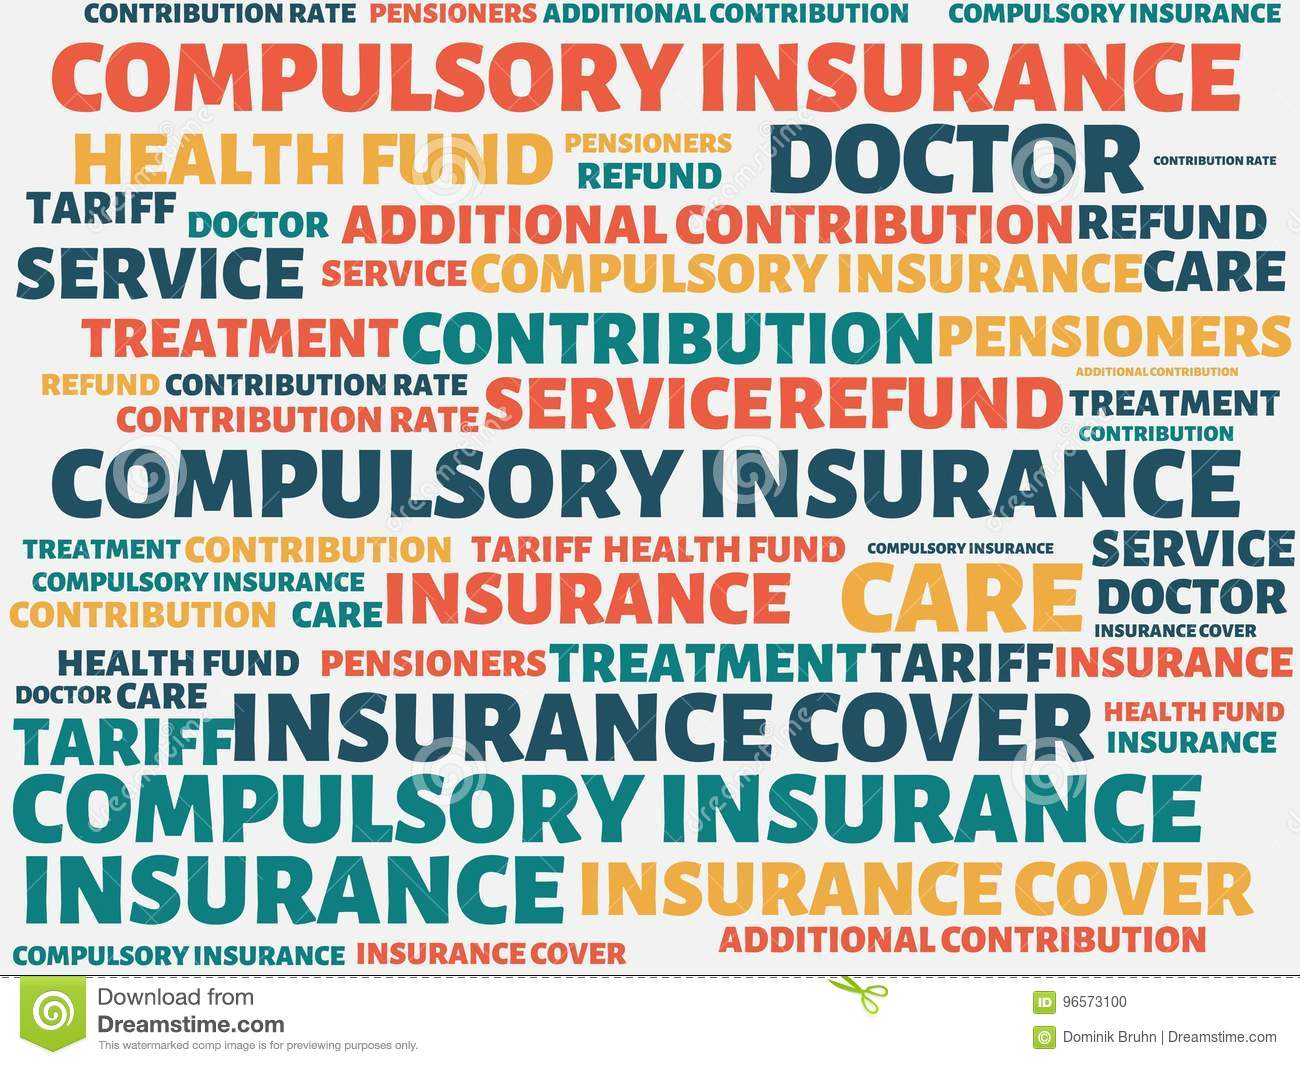 What is compulsory insurance 66